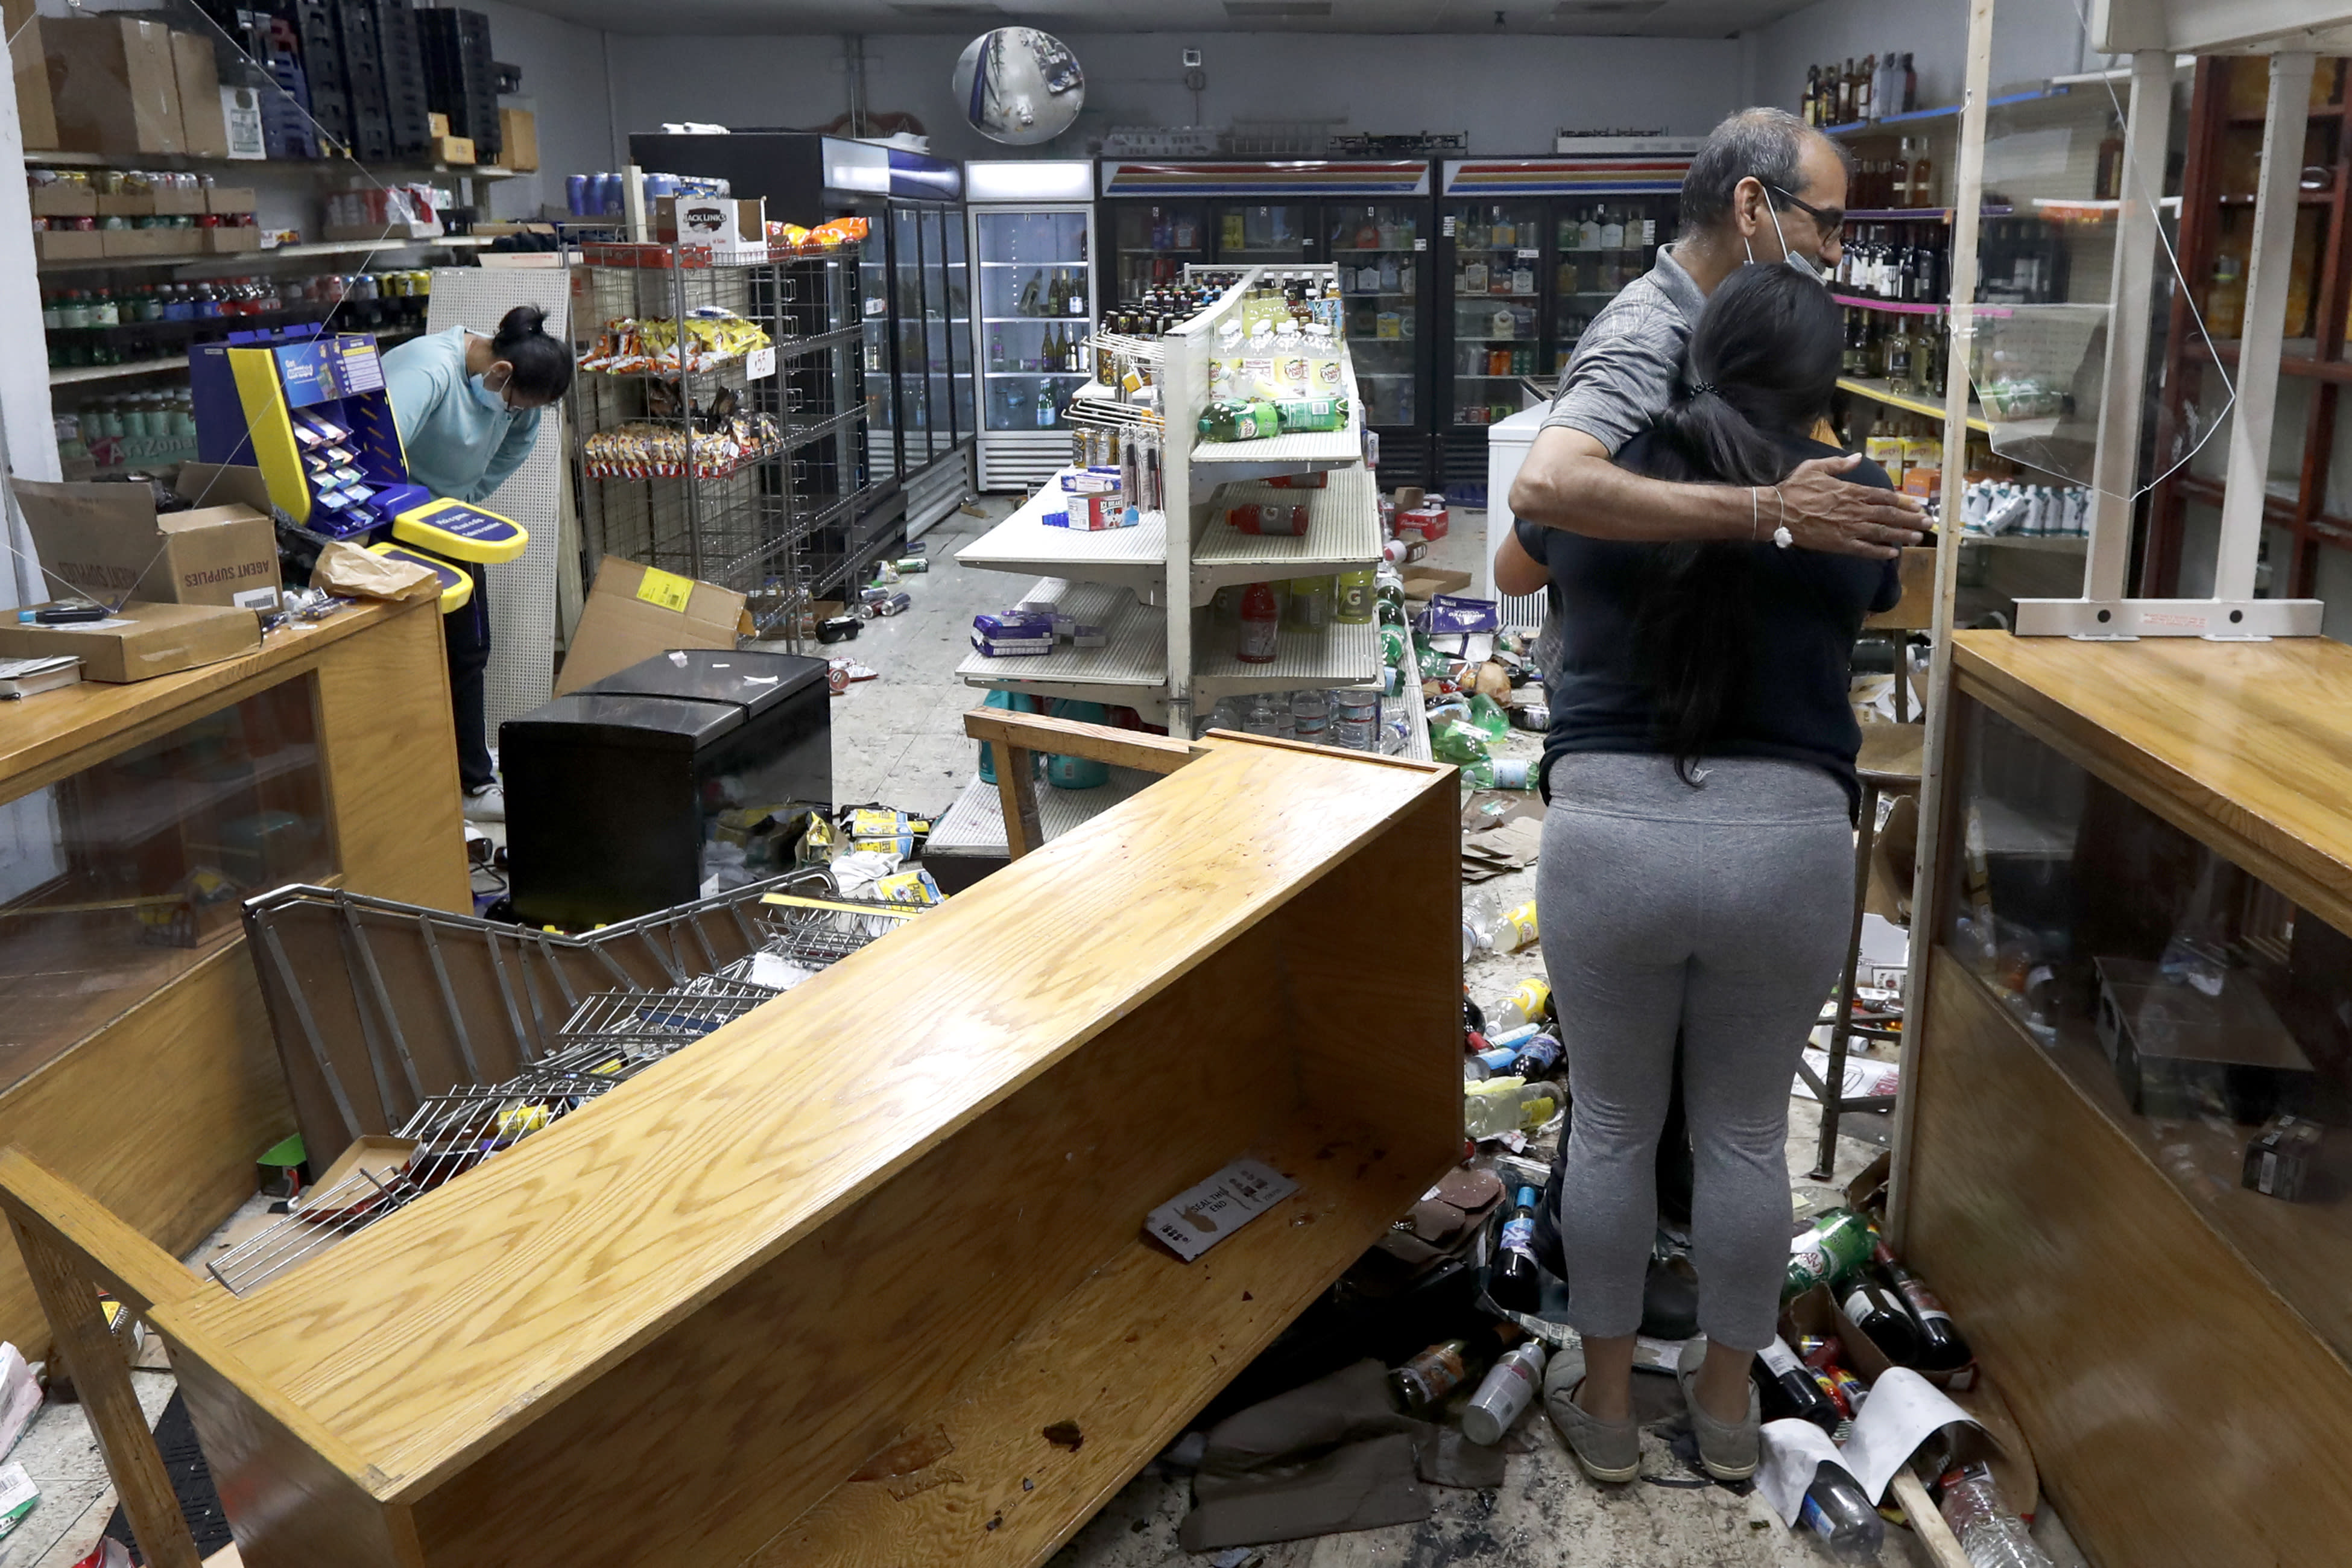 Yogi Dalal hugs his daughter, Jigisha, after she arrived Monday, Aug. 10, 2020 at the family food and liquor store, as his other daughter, Kajal, left, bows her head, after the family business was vandalized in downtown Chicago. (AP Photo/Charles Rex Arbogast, File)